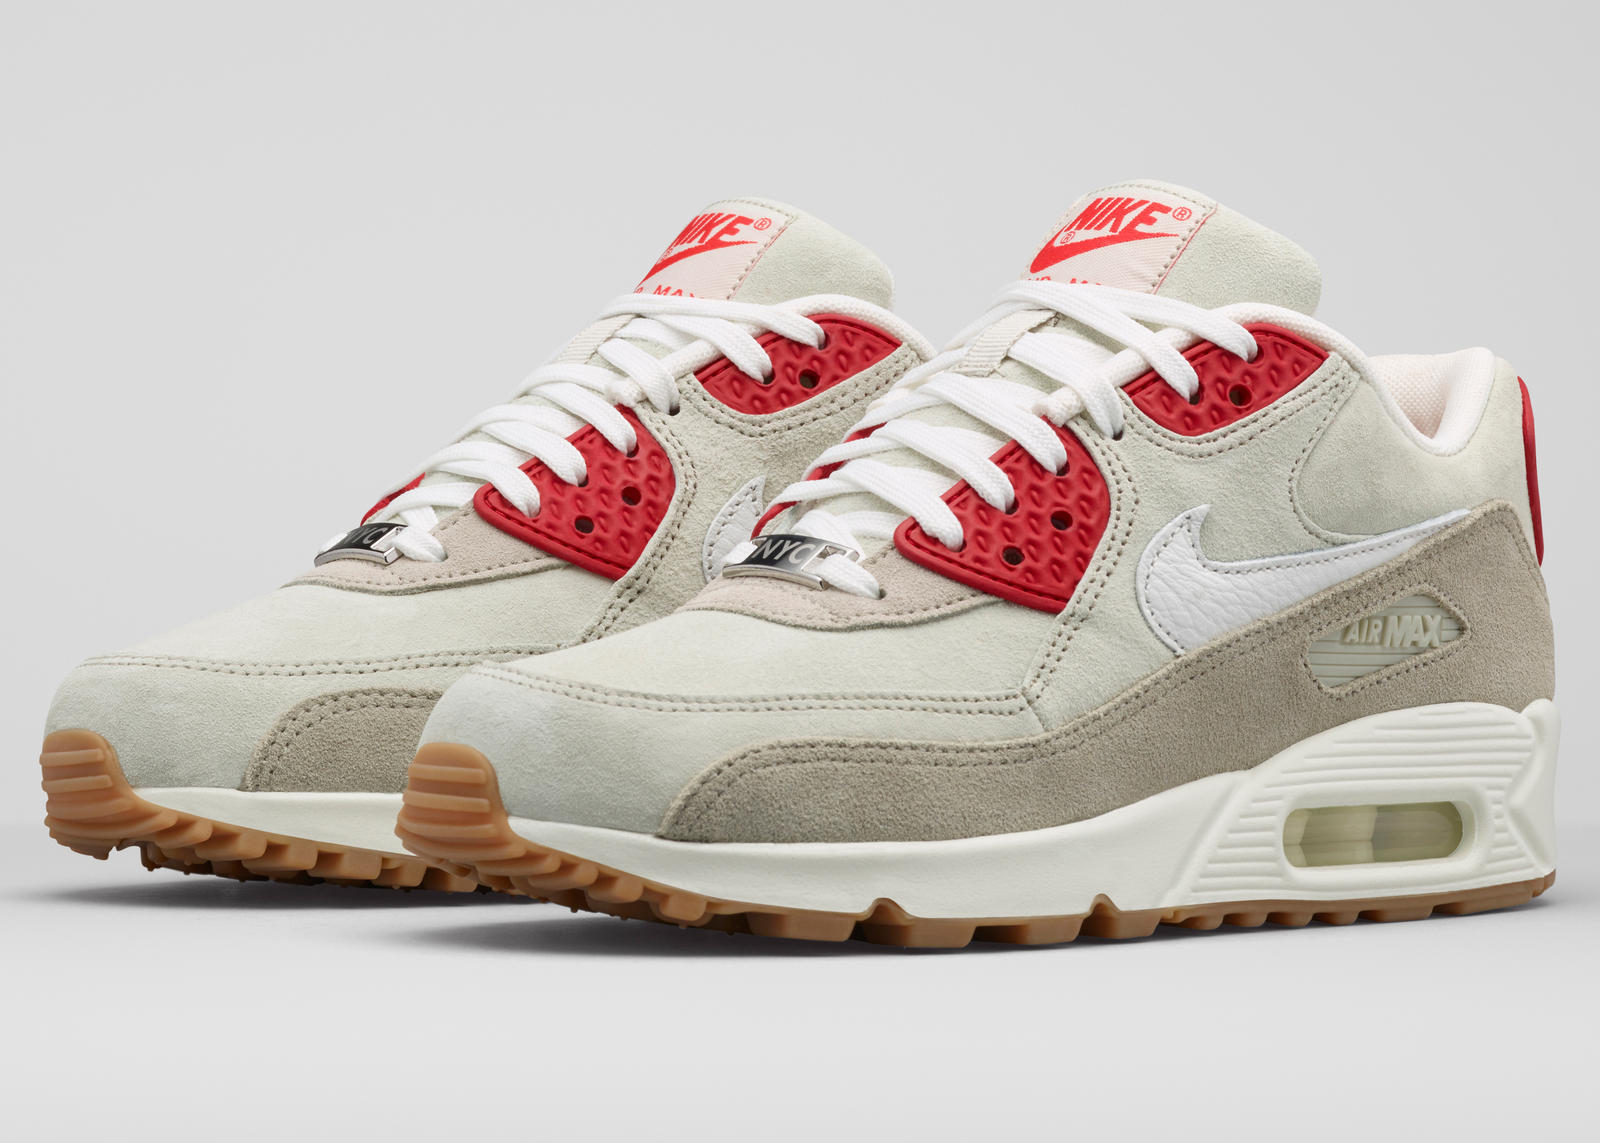 Nike-air-max-90-sweet-city-pack-new-york-strawberry-cheesecake-1